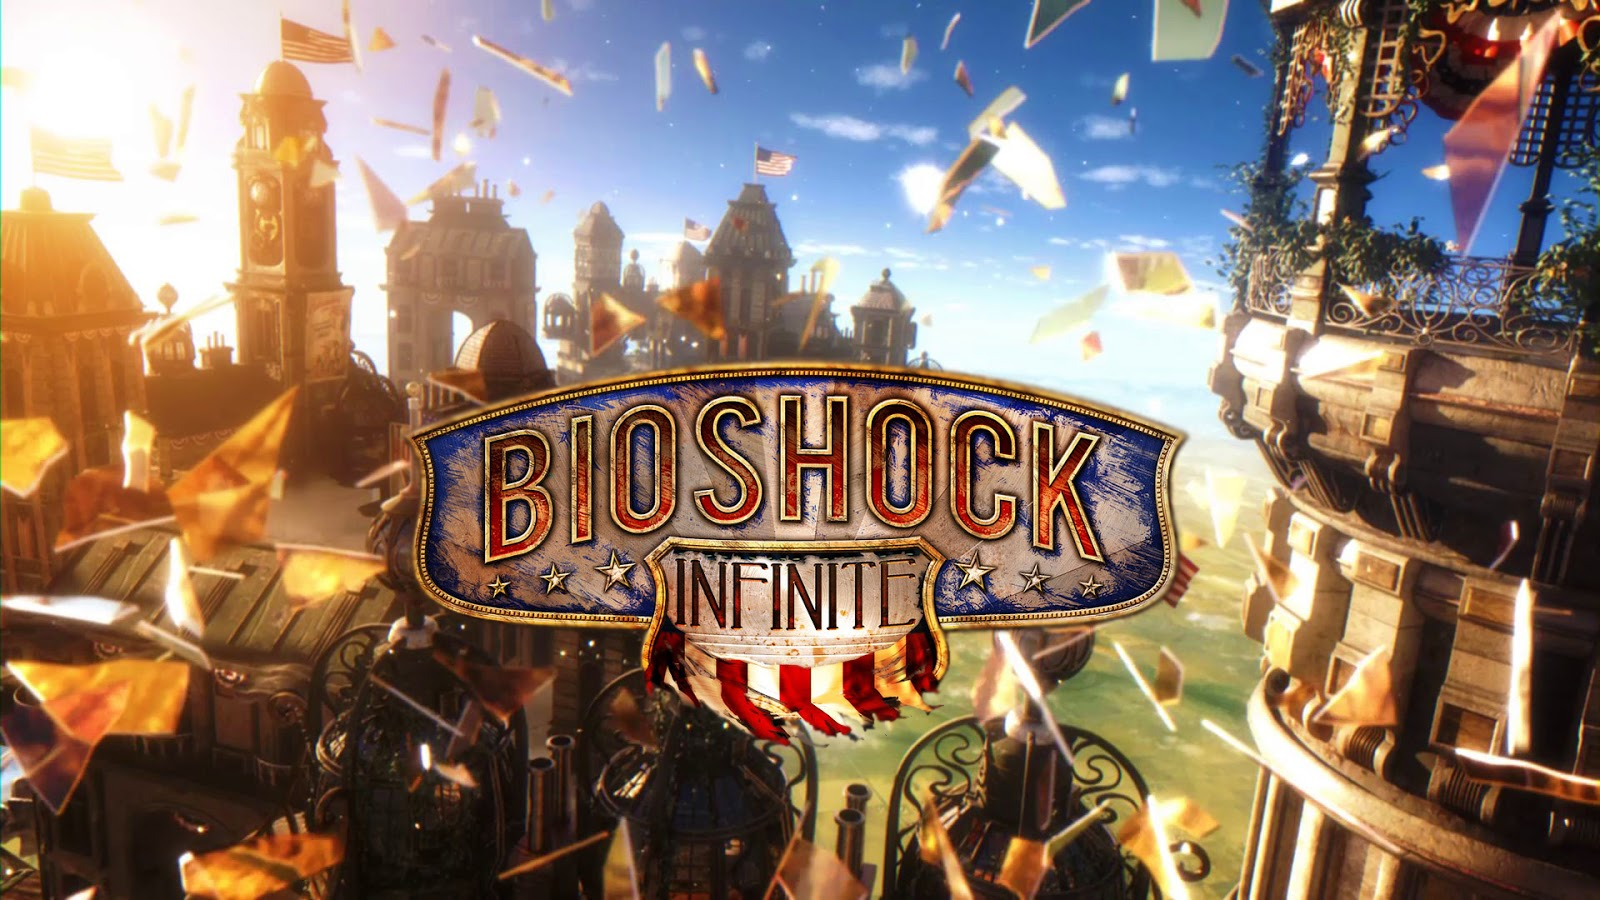 BIOSHOCK Infinite GAMEPLAY in 3D Stereoscopy